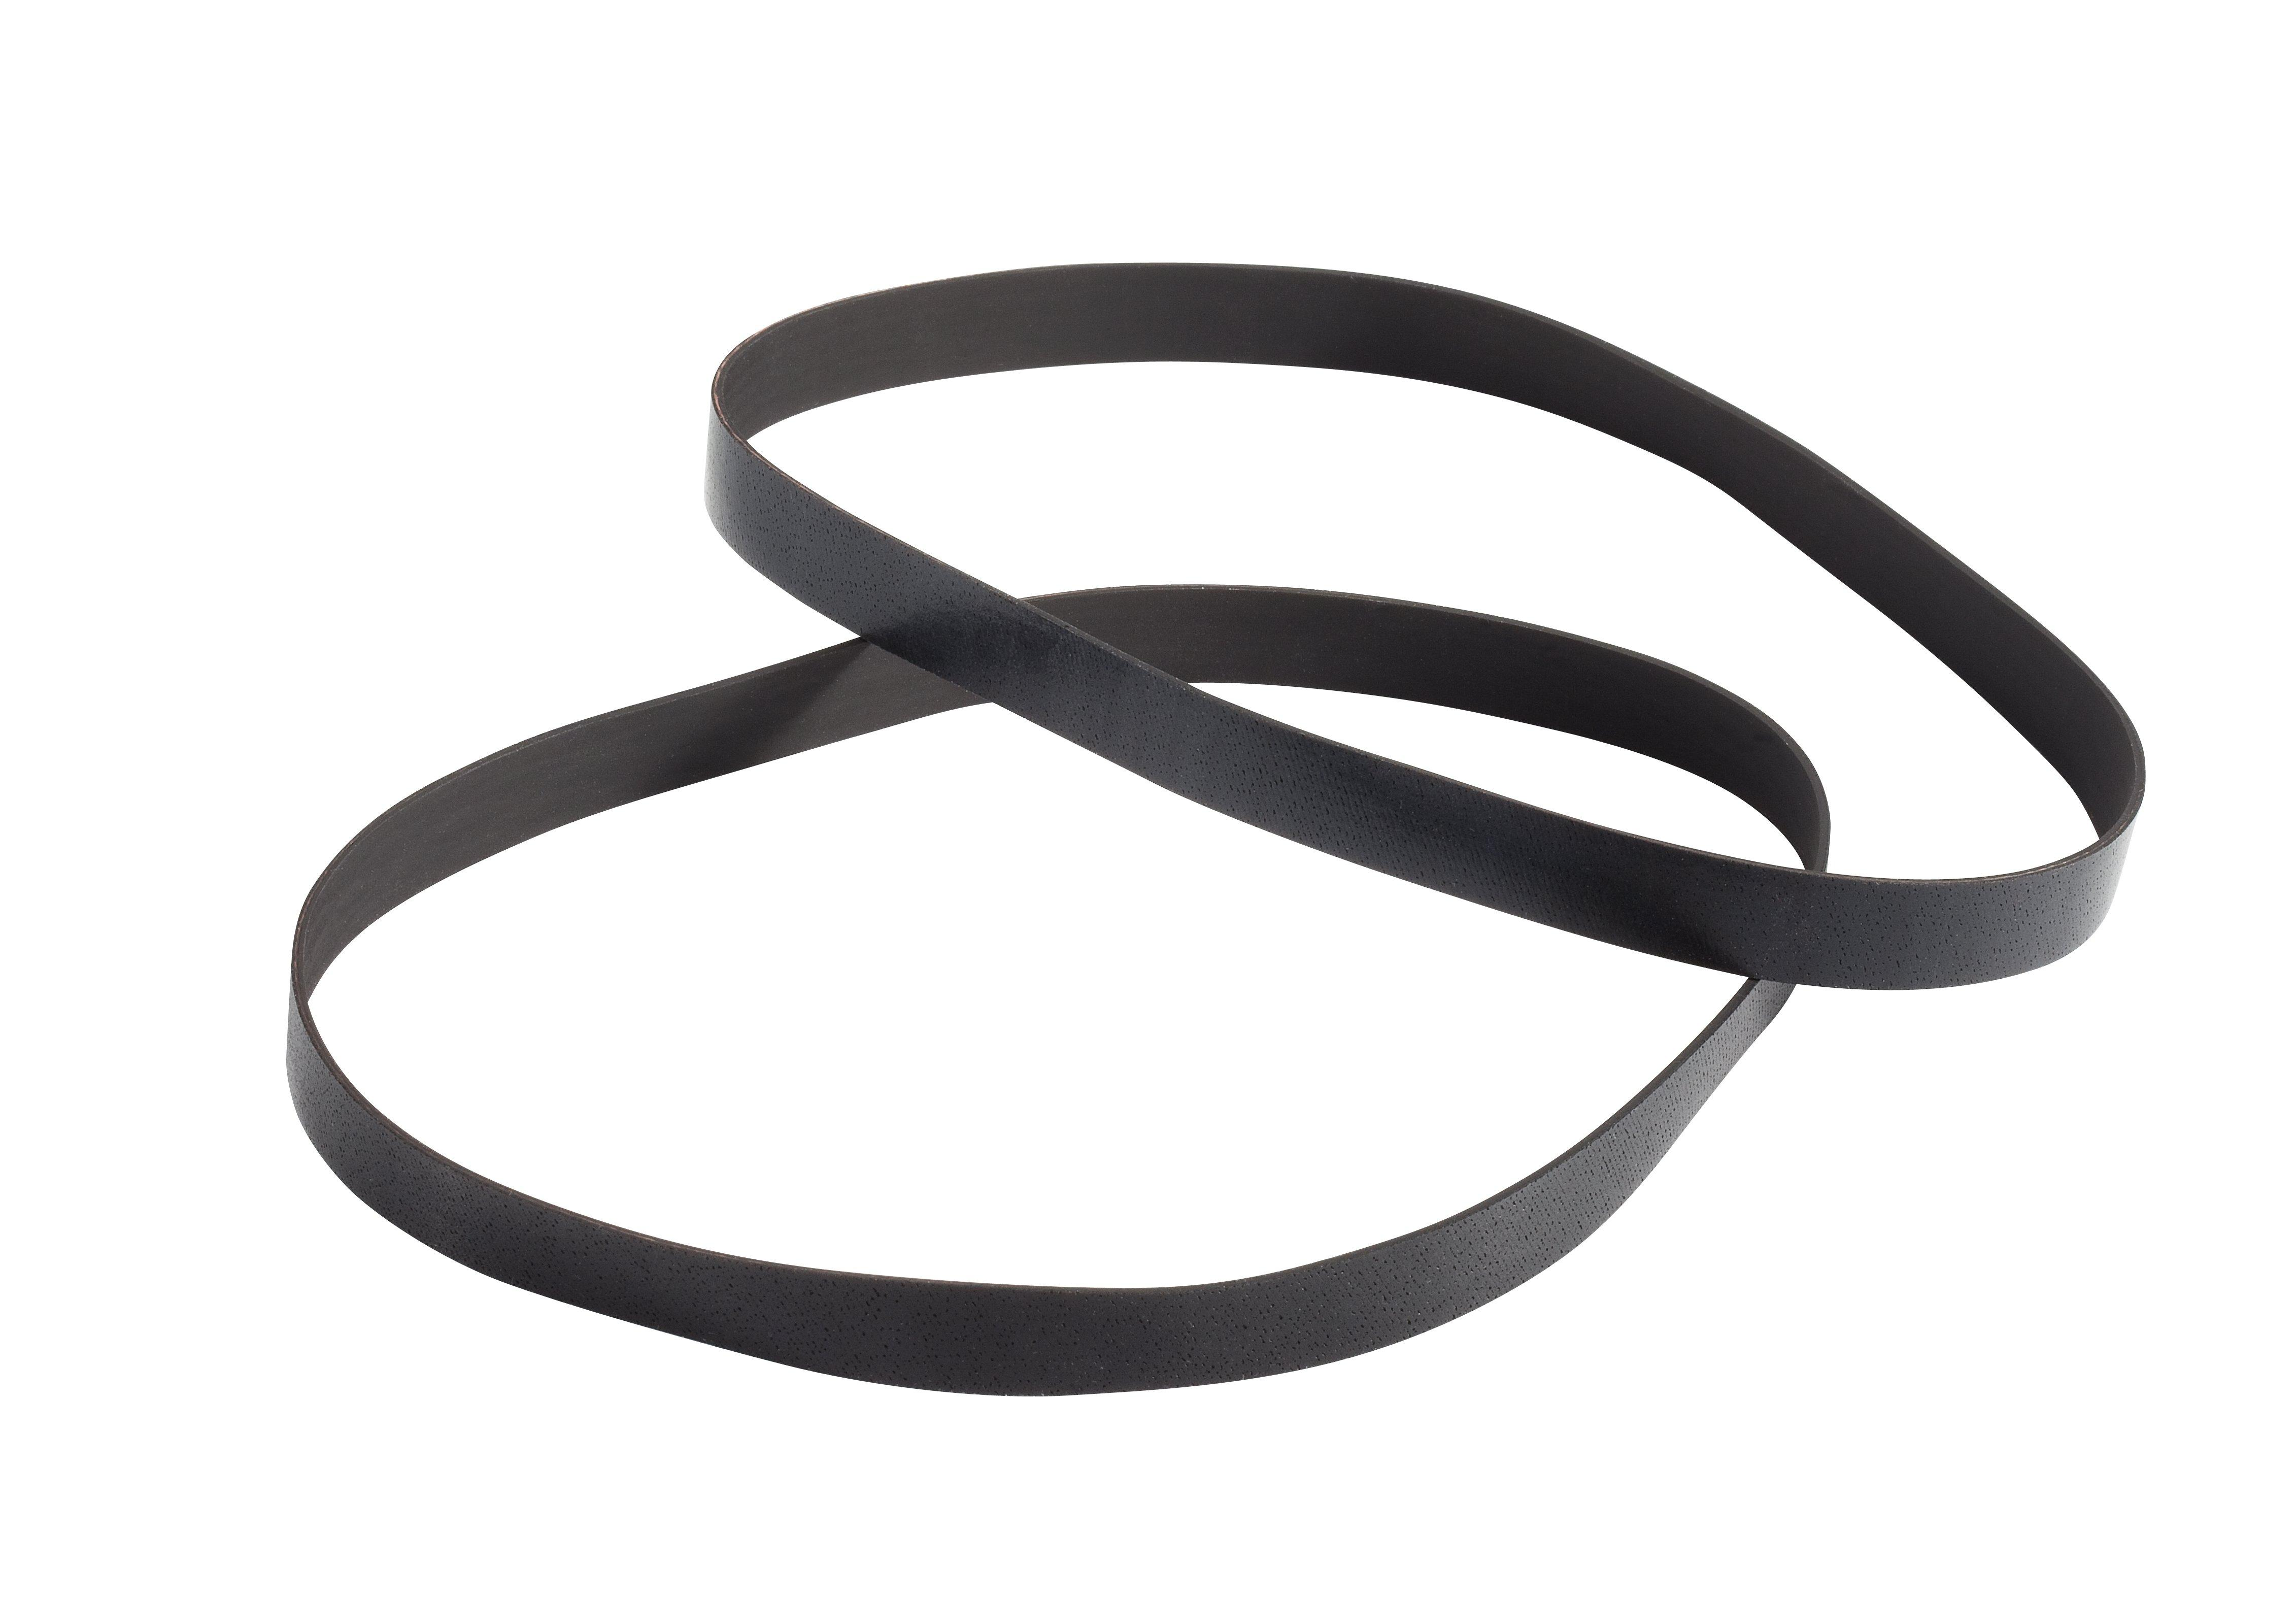 Flat Non-Stretch Belt - 2 Pack for Select Hoover Bagless Uprights with On/Off Brushroll Pedal